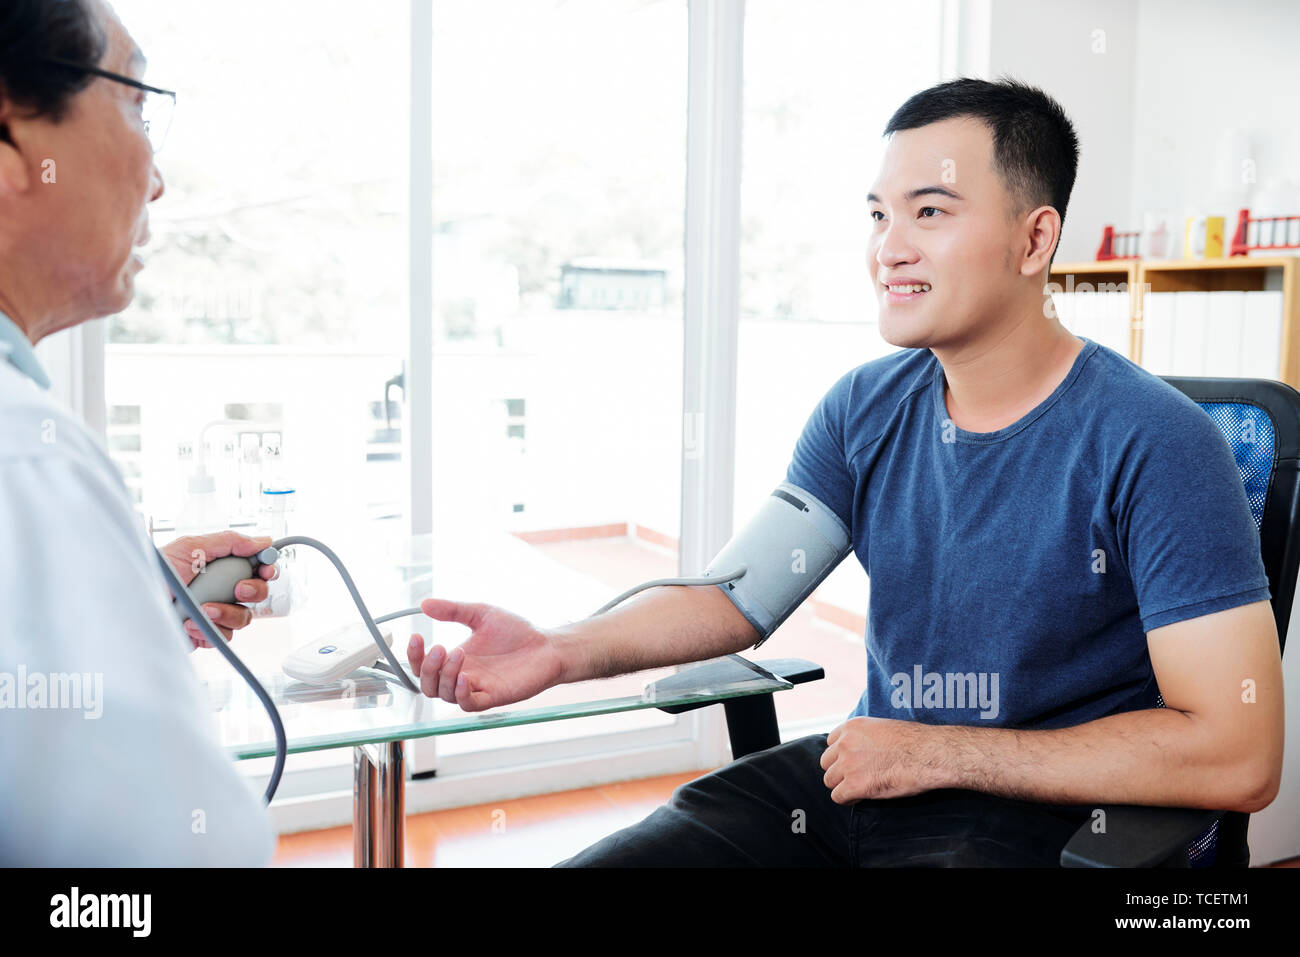 Doctor measuring blood pressure of young smiling Asian man - Stock Image